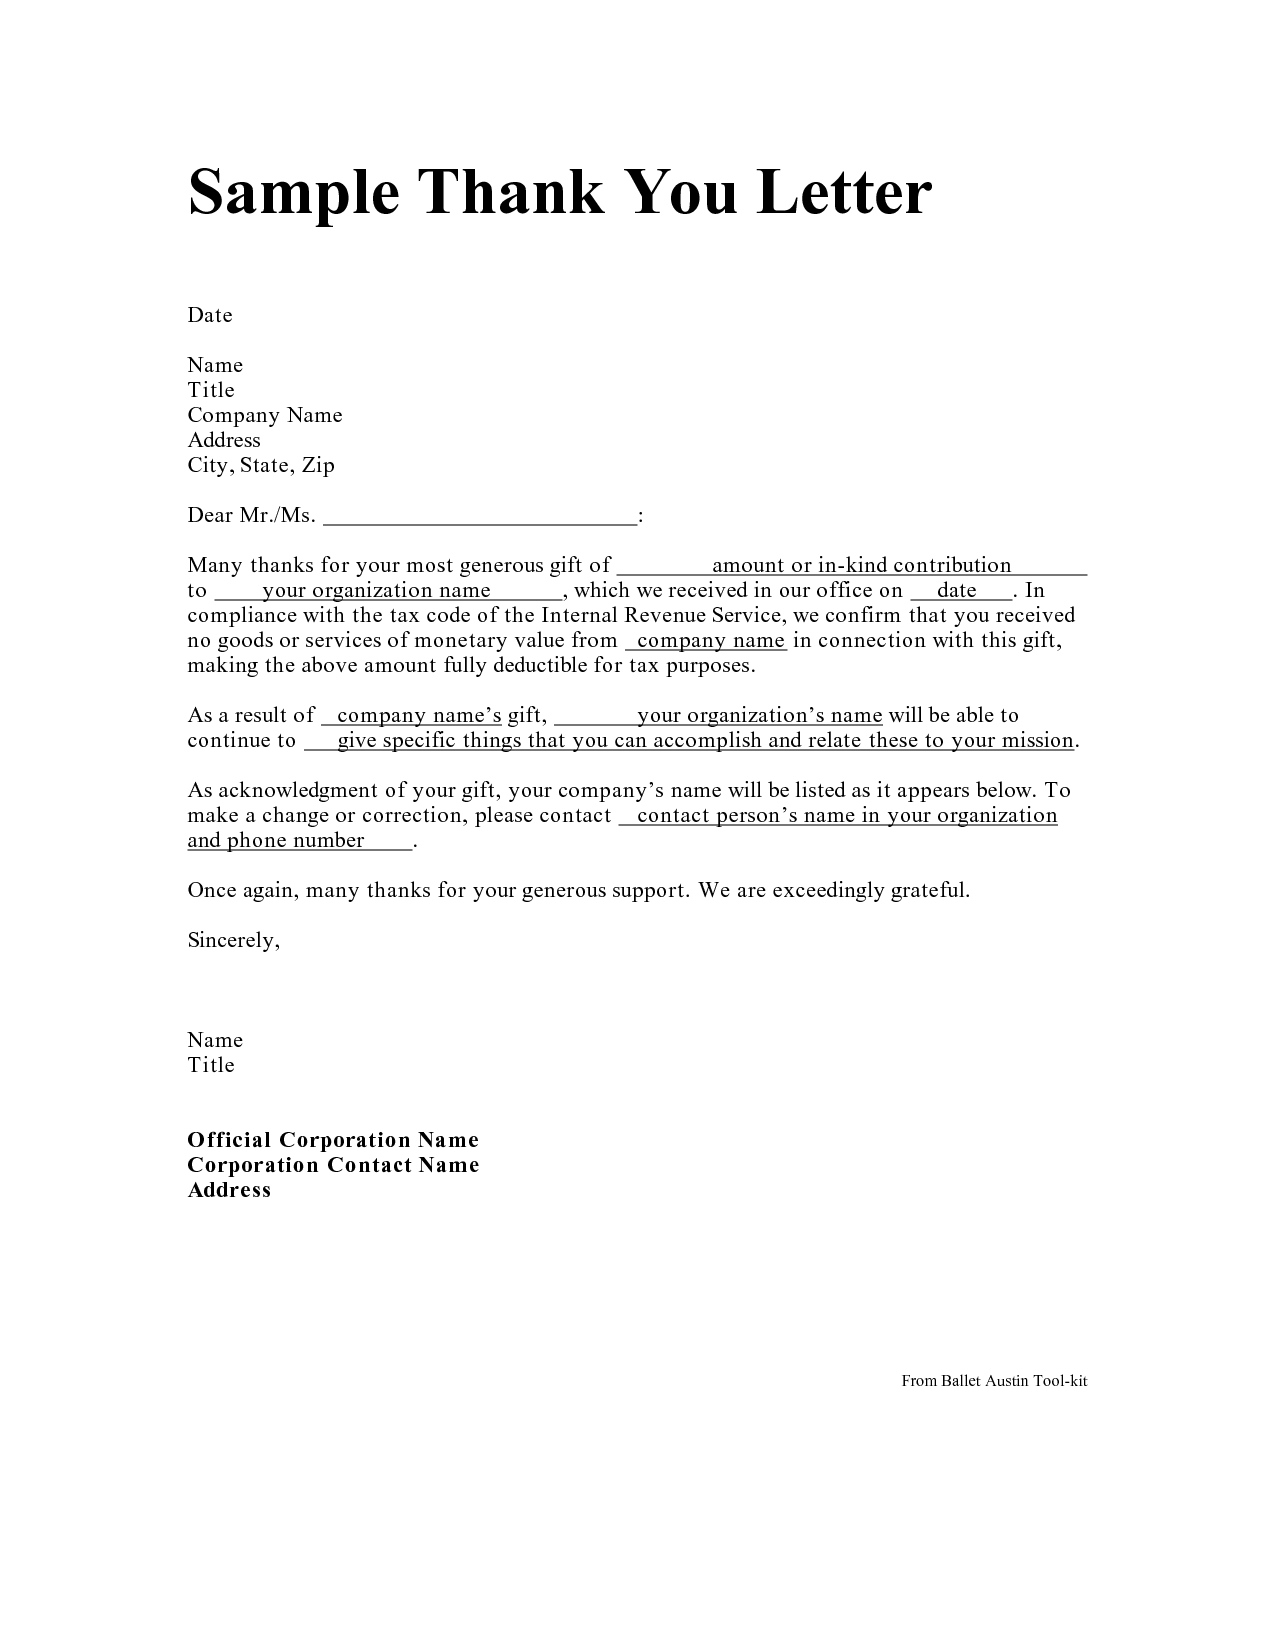 Tax Deductible Donation Thank You Letter Template - Personal Thank You Letter Personal Thank You Letter Samples